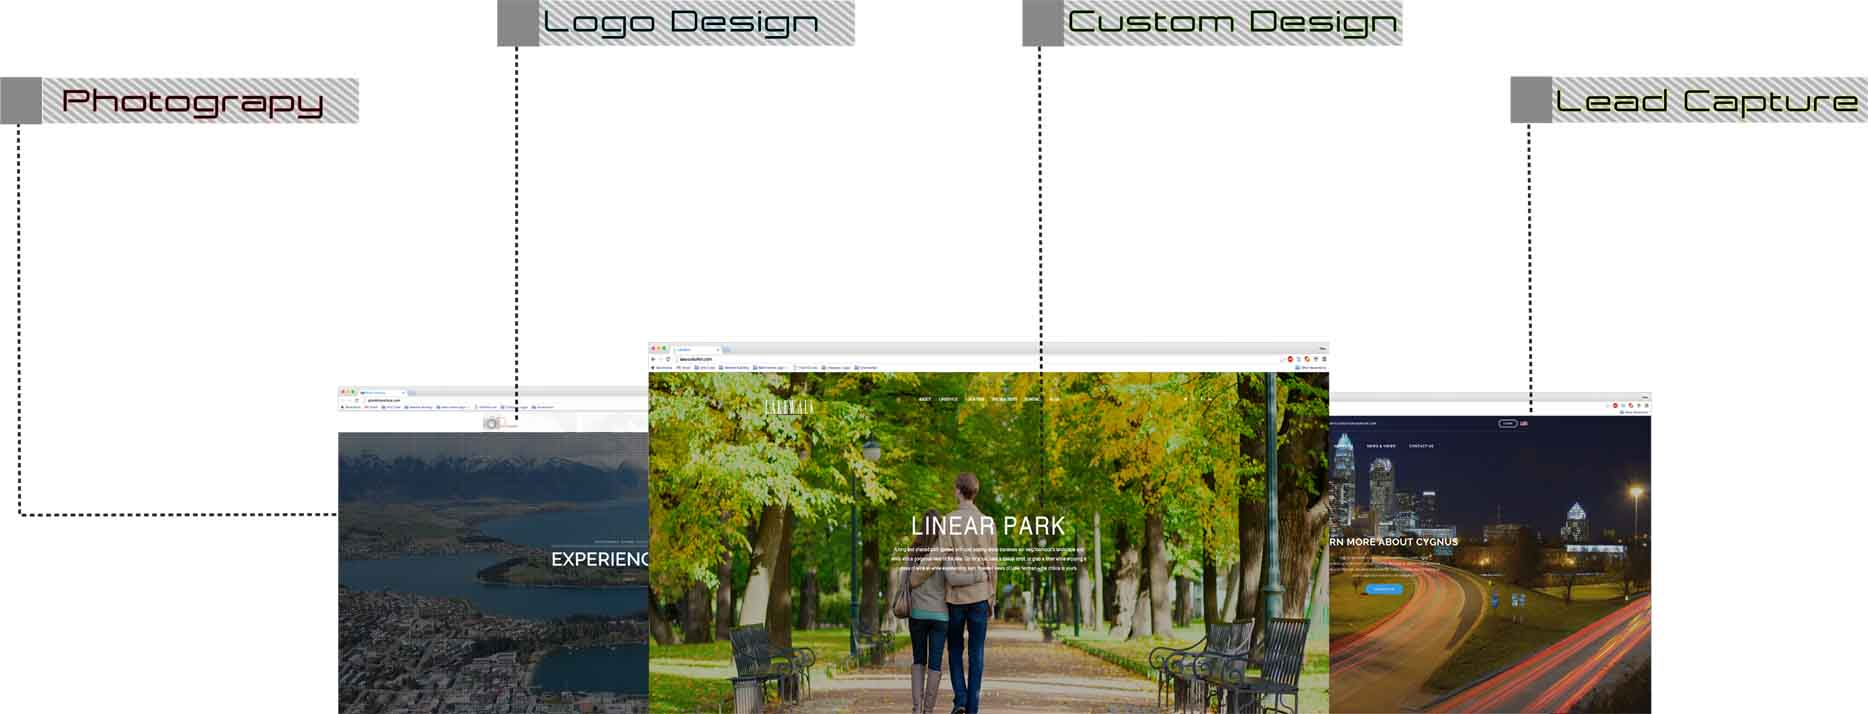 examples of arts cube web design